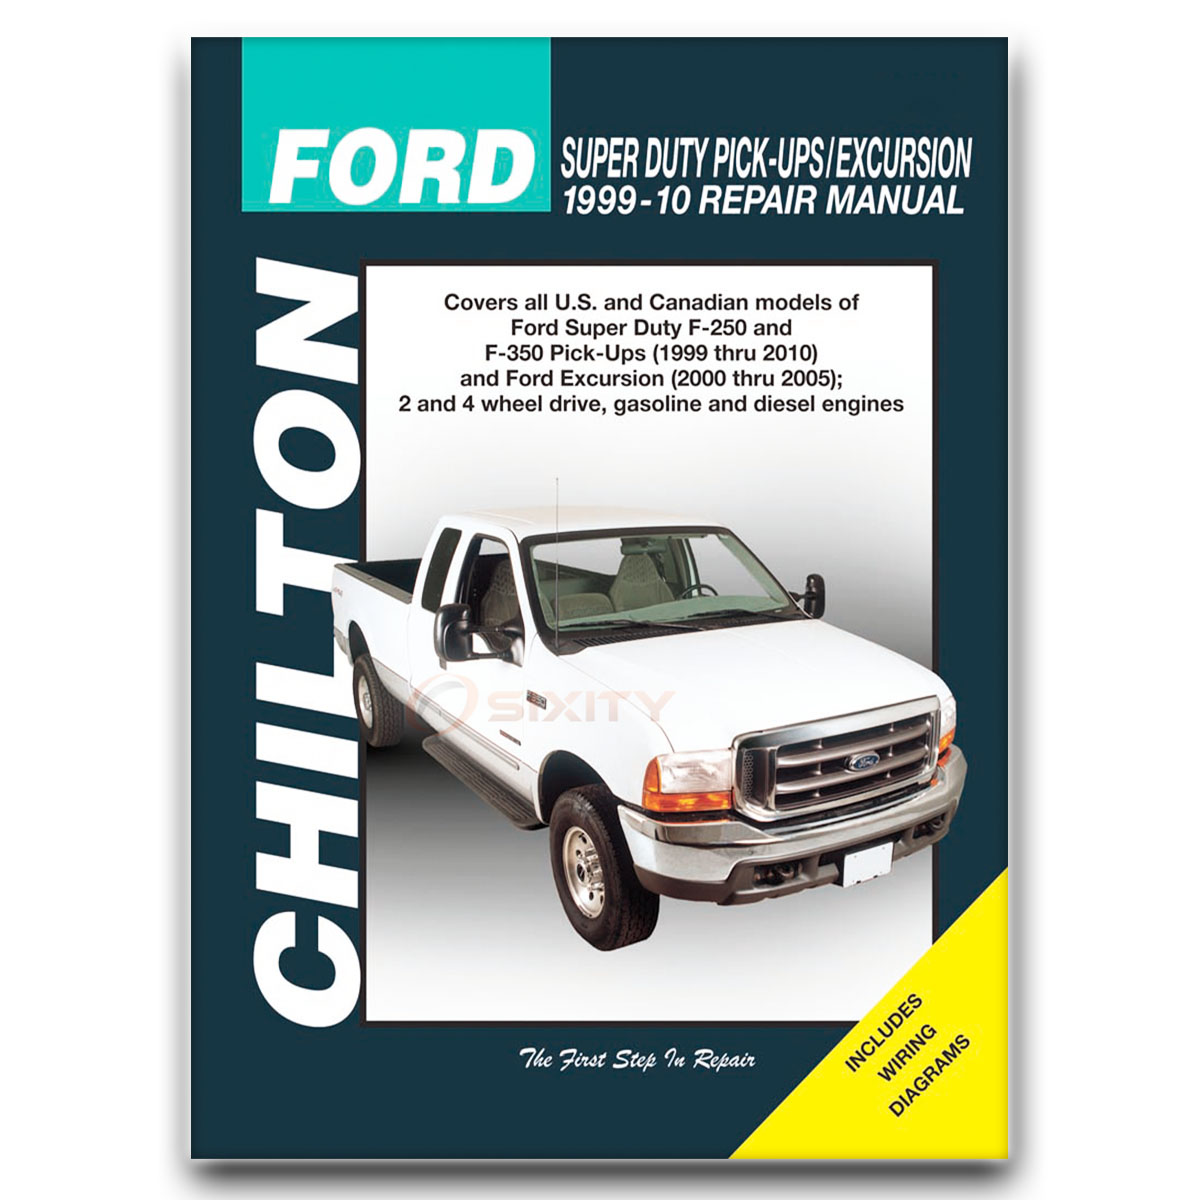 Chilton Repair Manual for Ford F-250 Super Duty Lariat XL Harley-Davidson ip